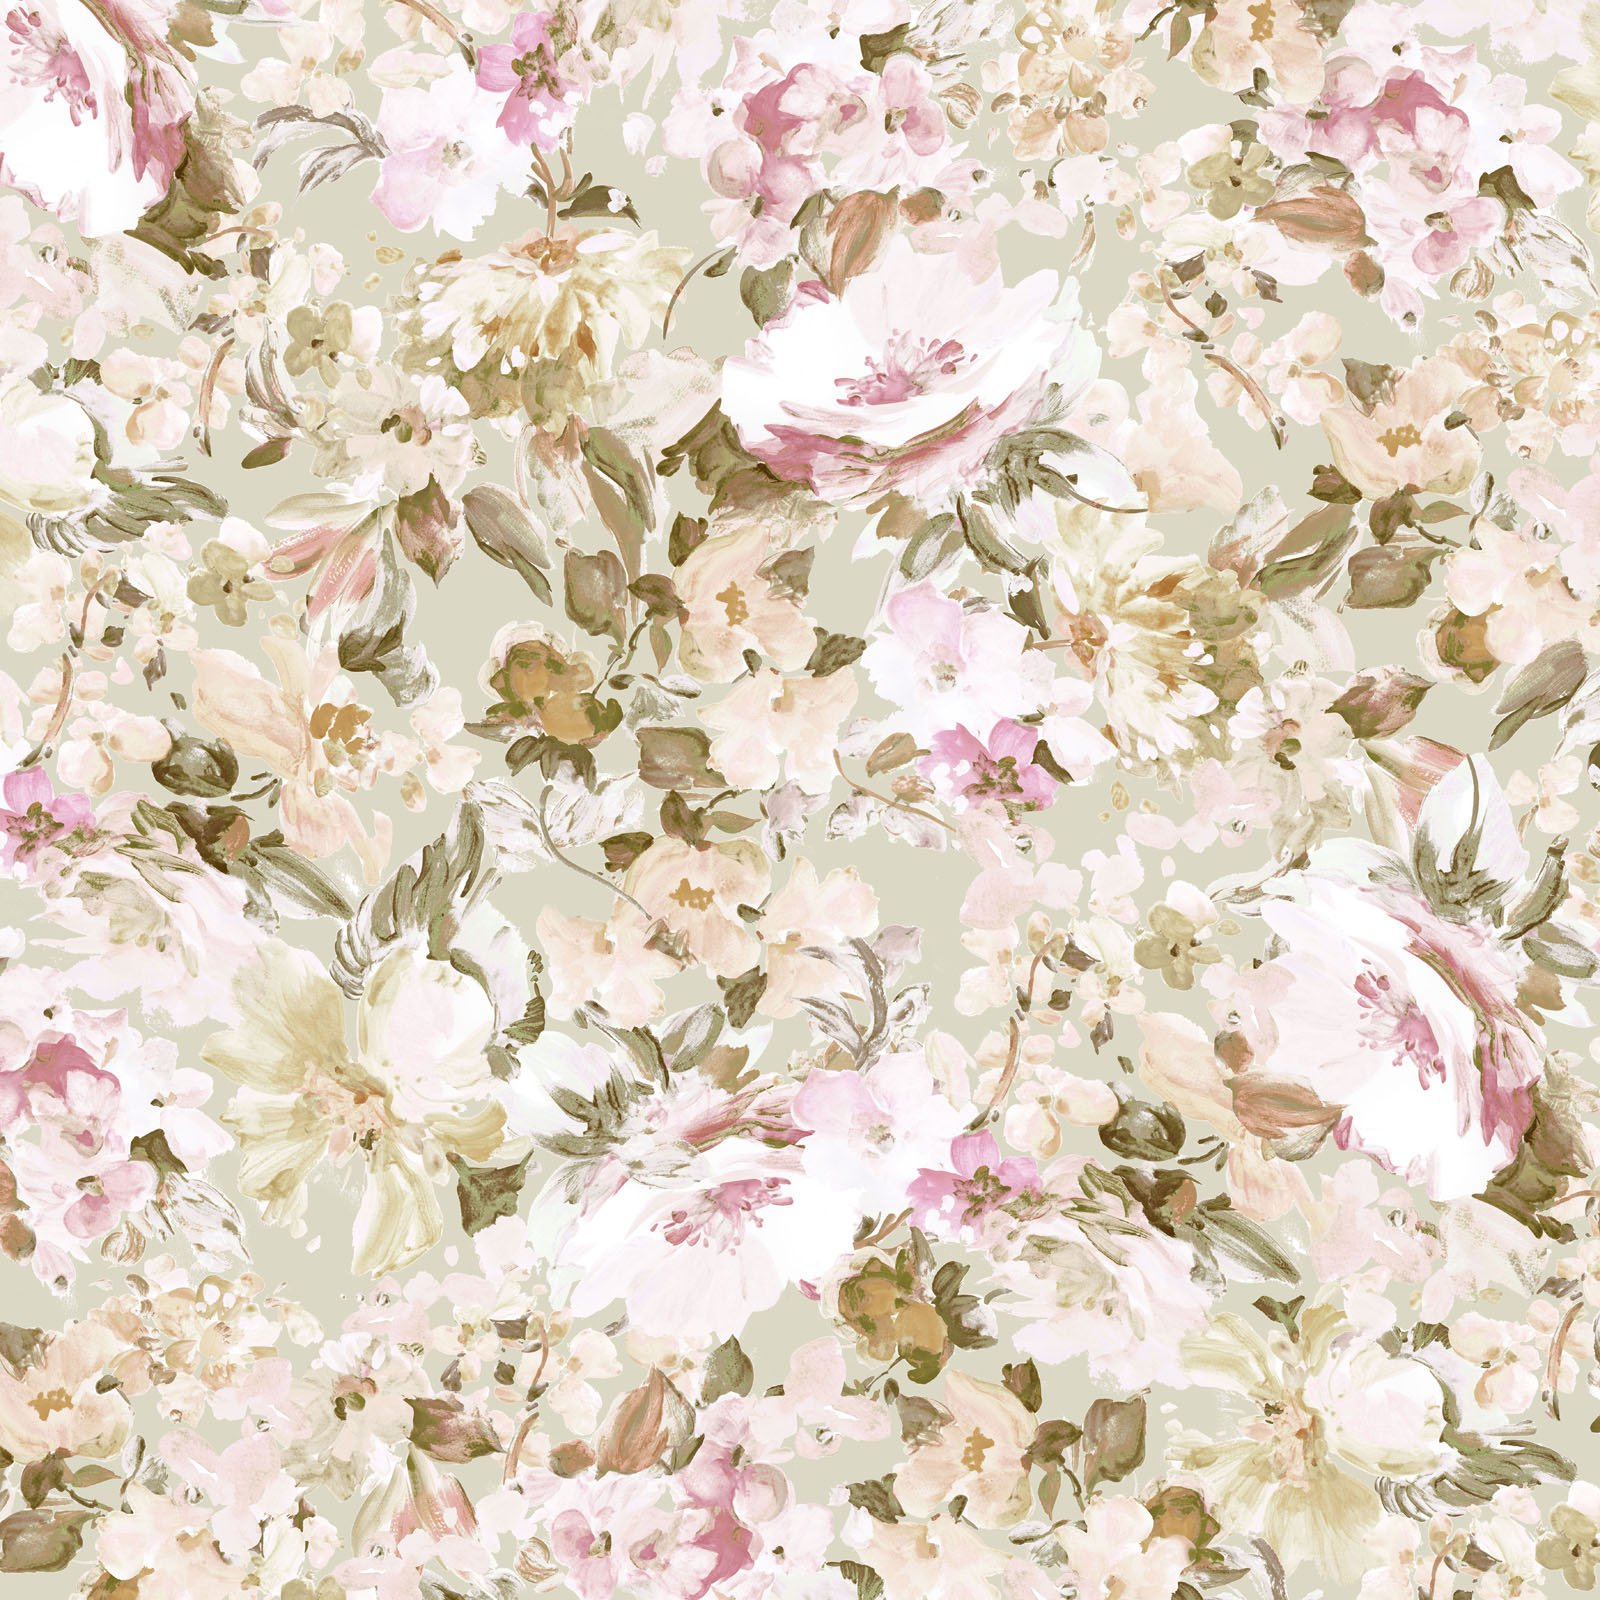 AMEI-4402 J - AMELIA 108 BY P&B BOUTIQUE FLORAL PEACH - ARRIVING IN APRIL 2021